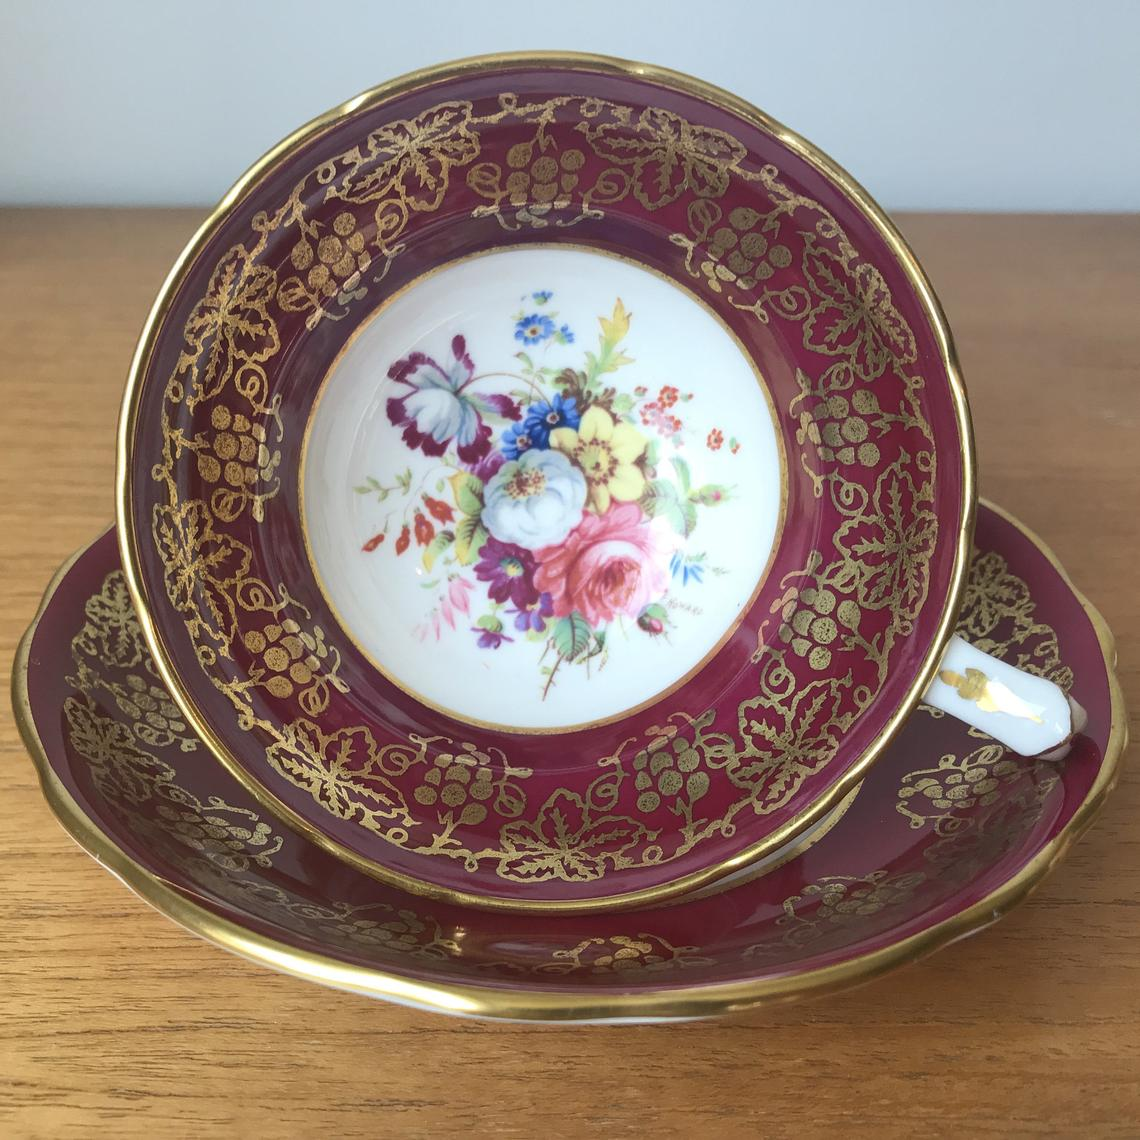 Hammersley Signed F Howard Flower Teacup and Saucer, Raspberry Pink Border with Gold Grape Vine Overlay Bone China Tea Cup and Saucer